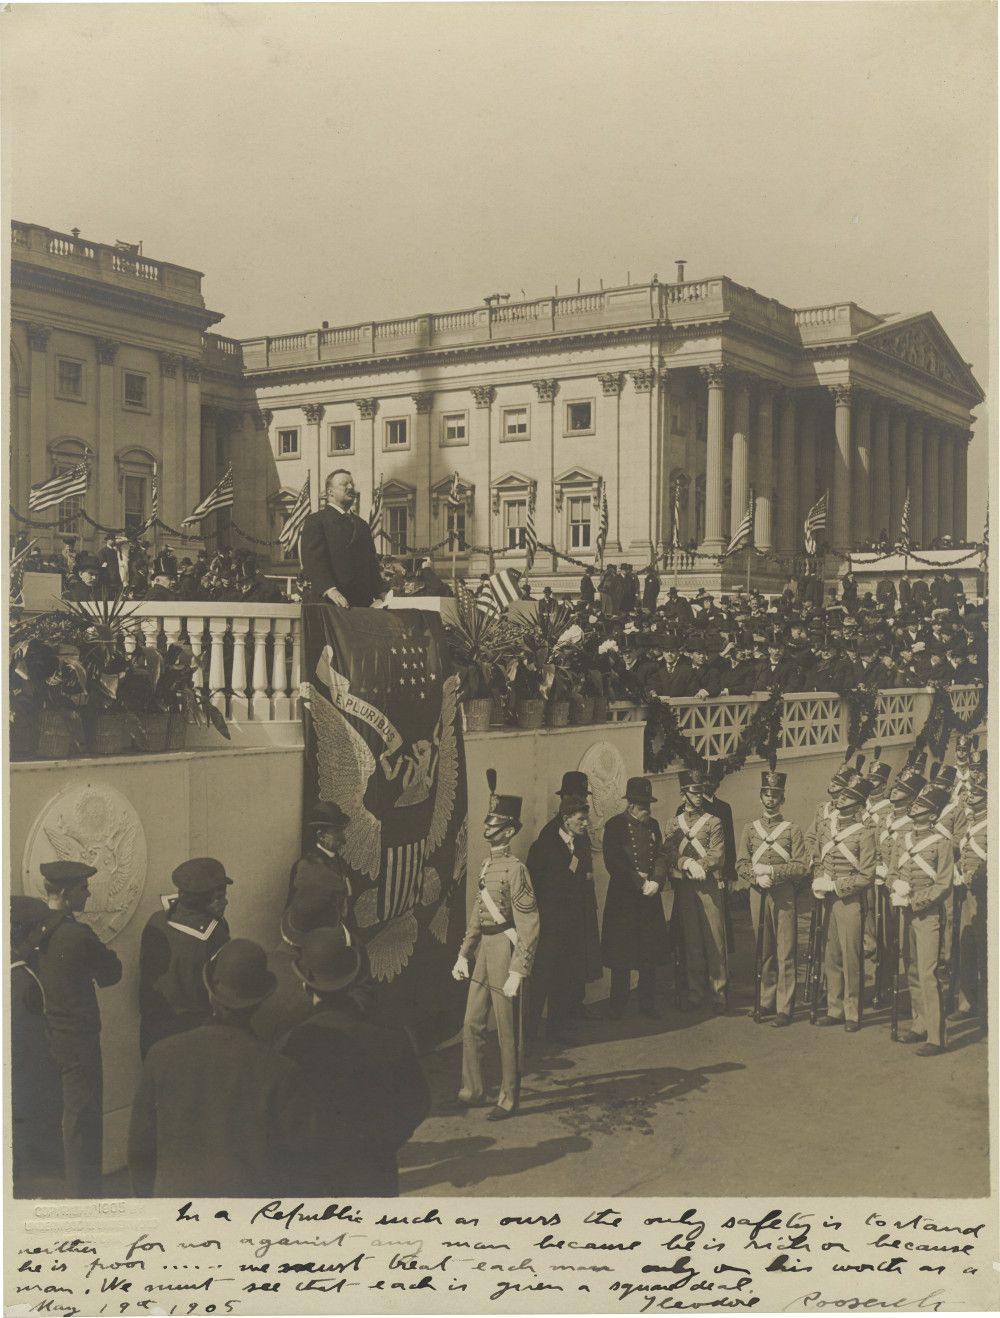 """Theodore Roosevelt Inscribes Photo of His 1905 Inaugural Address With His Keystone """"Square Deal"""" Credo"""